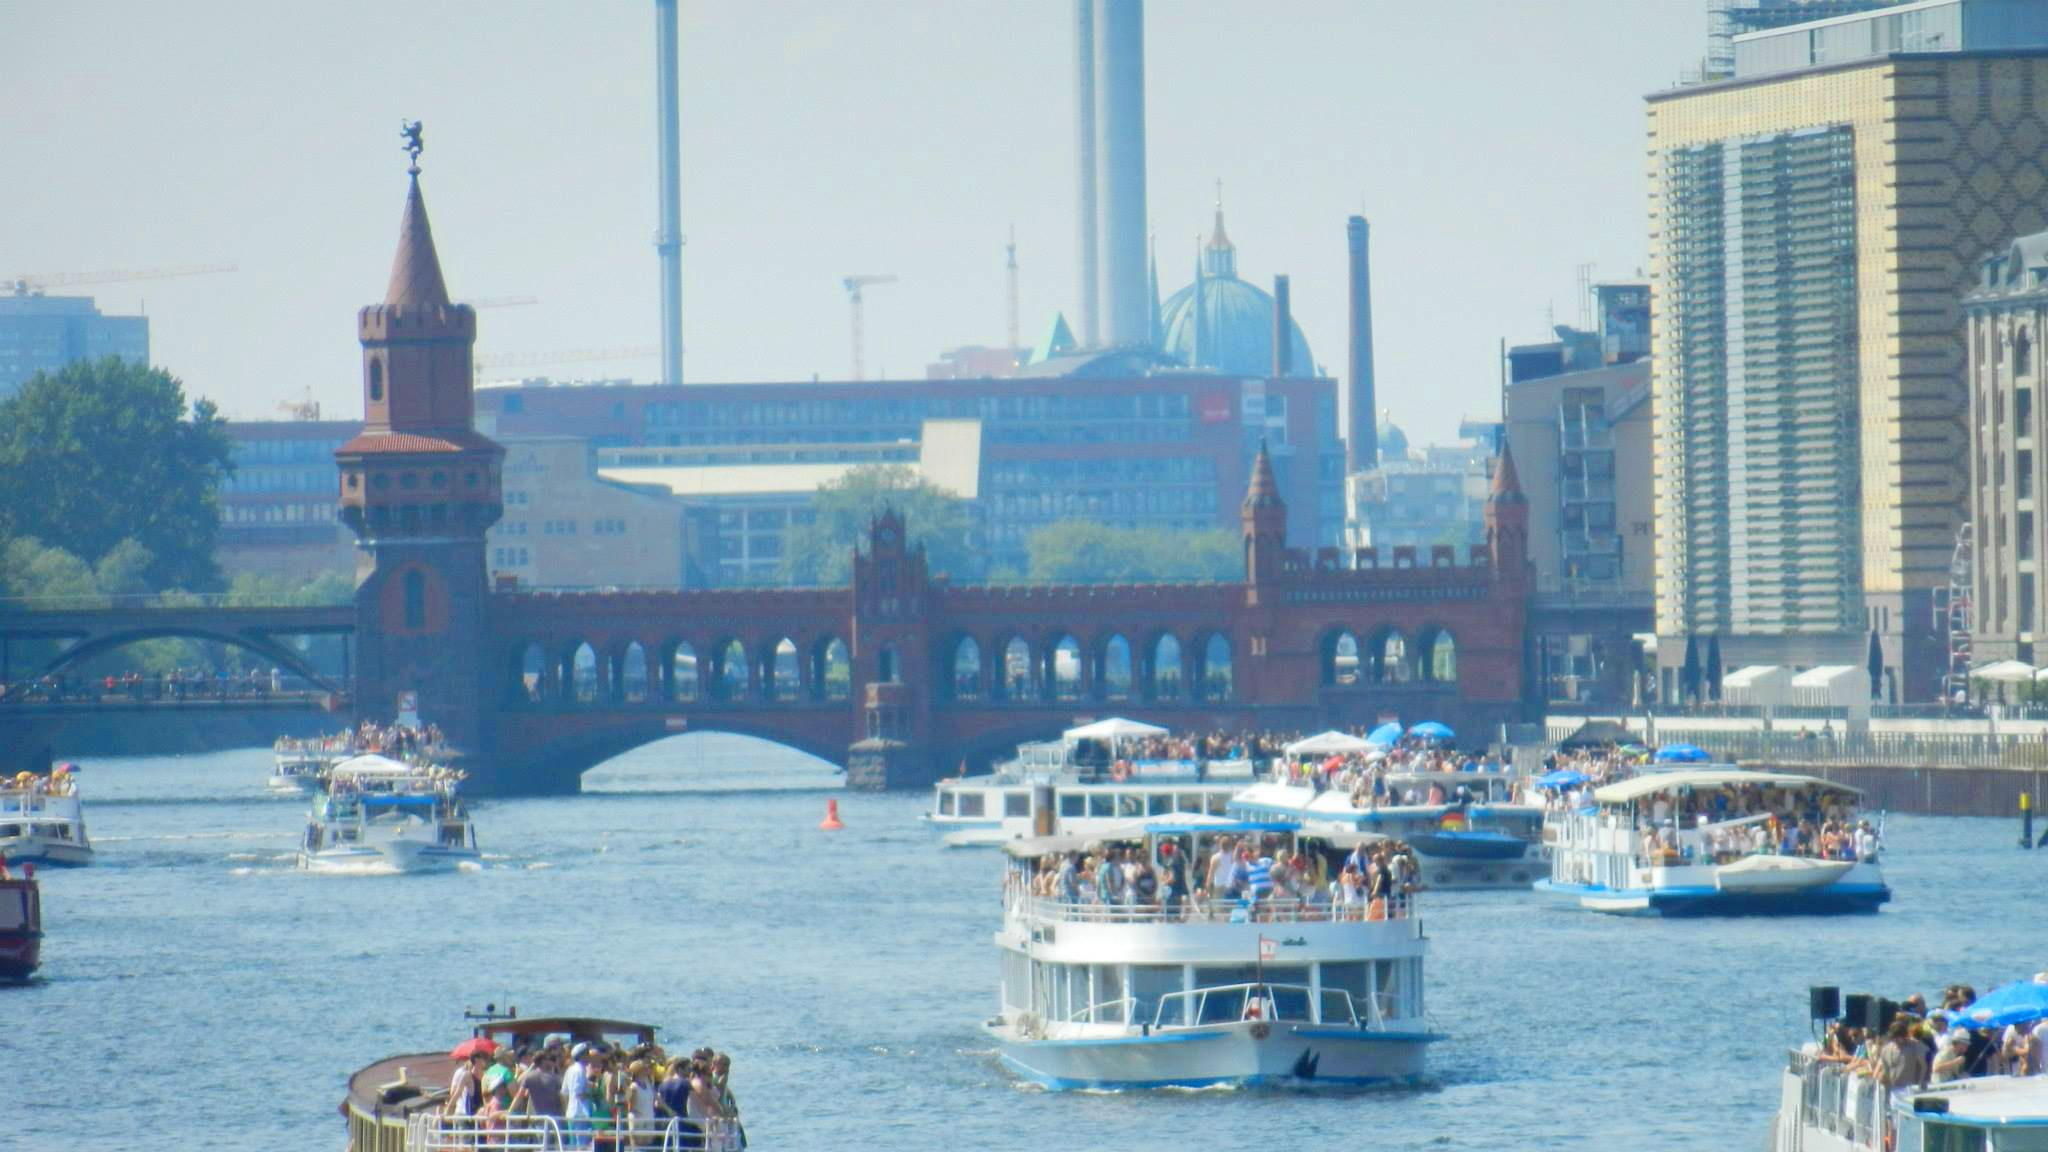 Boats sailing down the Spree river in Berlin